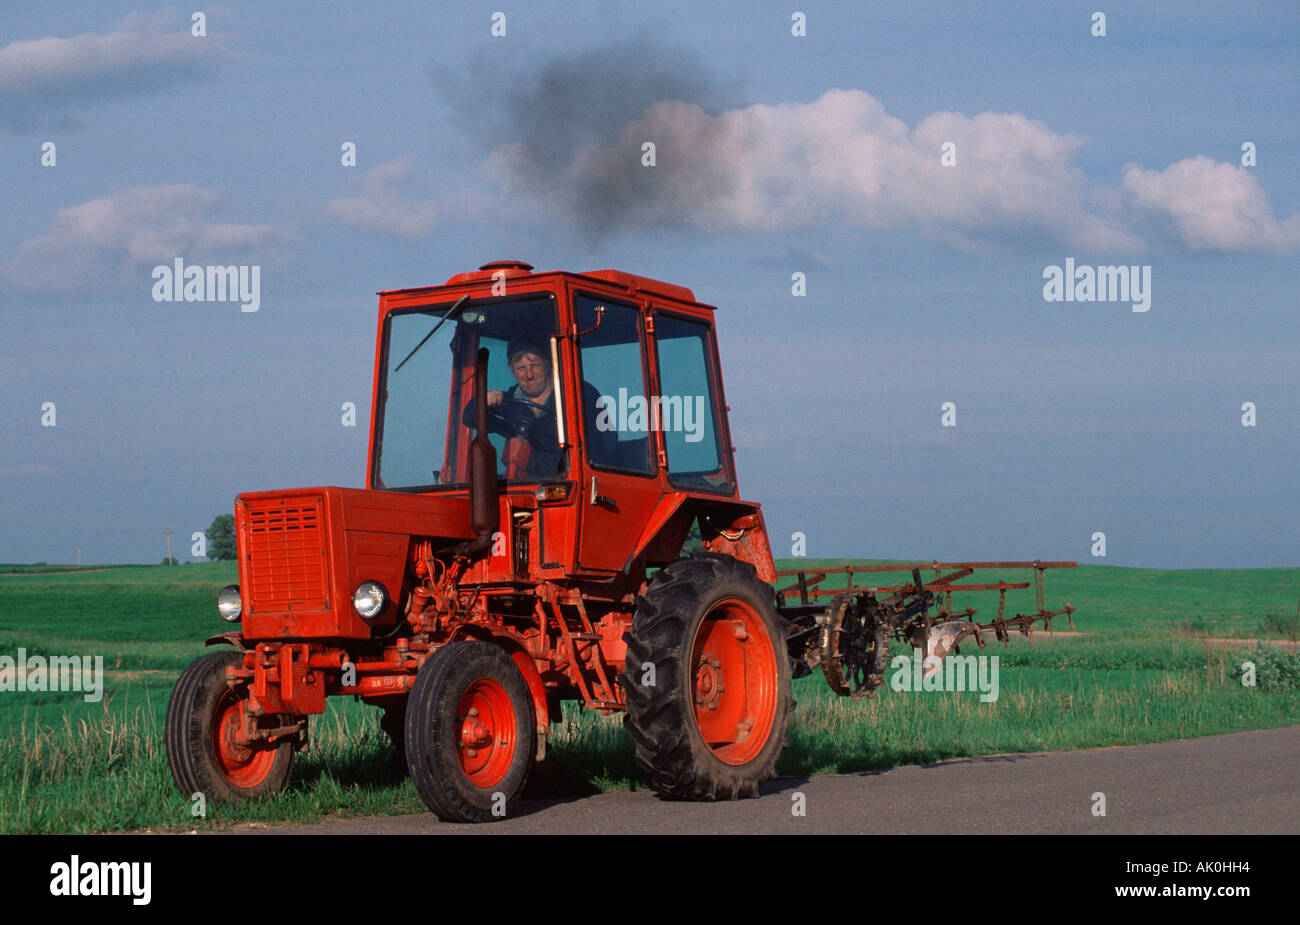 Farmer with tractor / Bauer mit Traktor - Stock Image